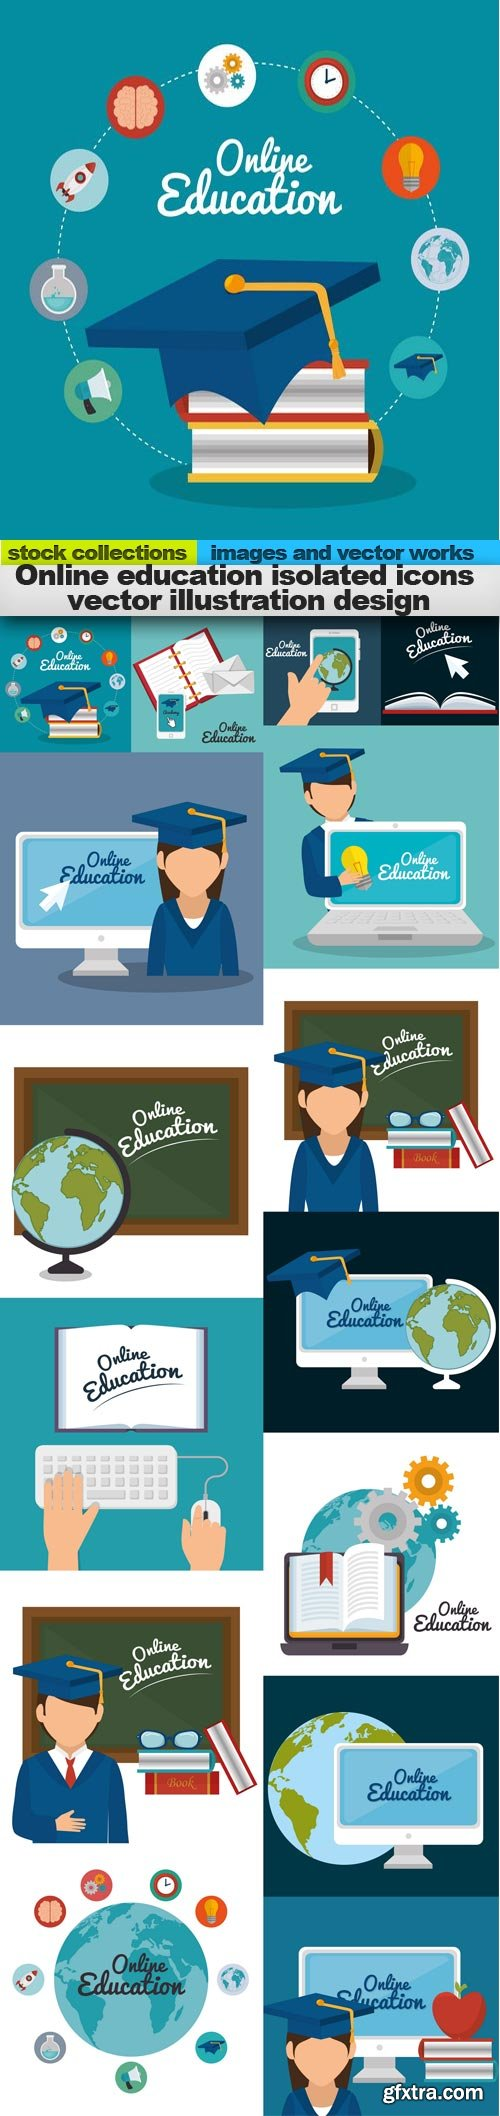 Online education isolated icons vector illustration design, 15 x EPS